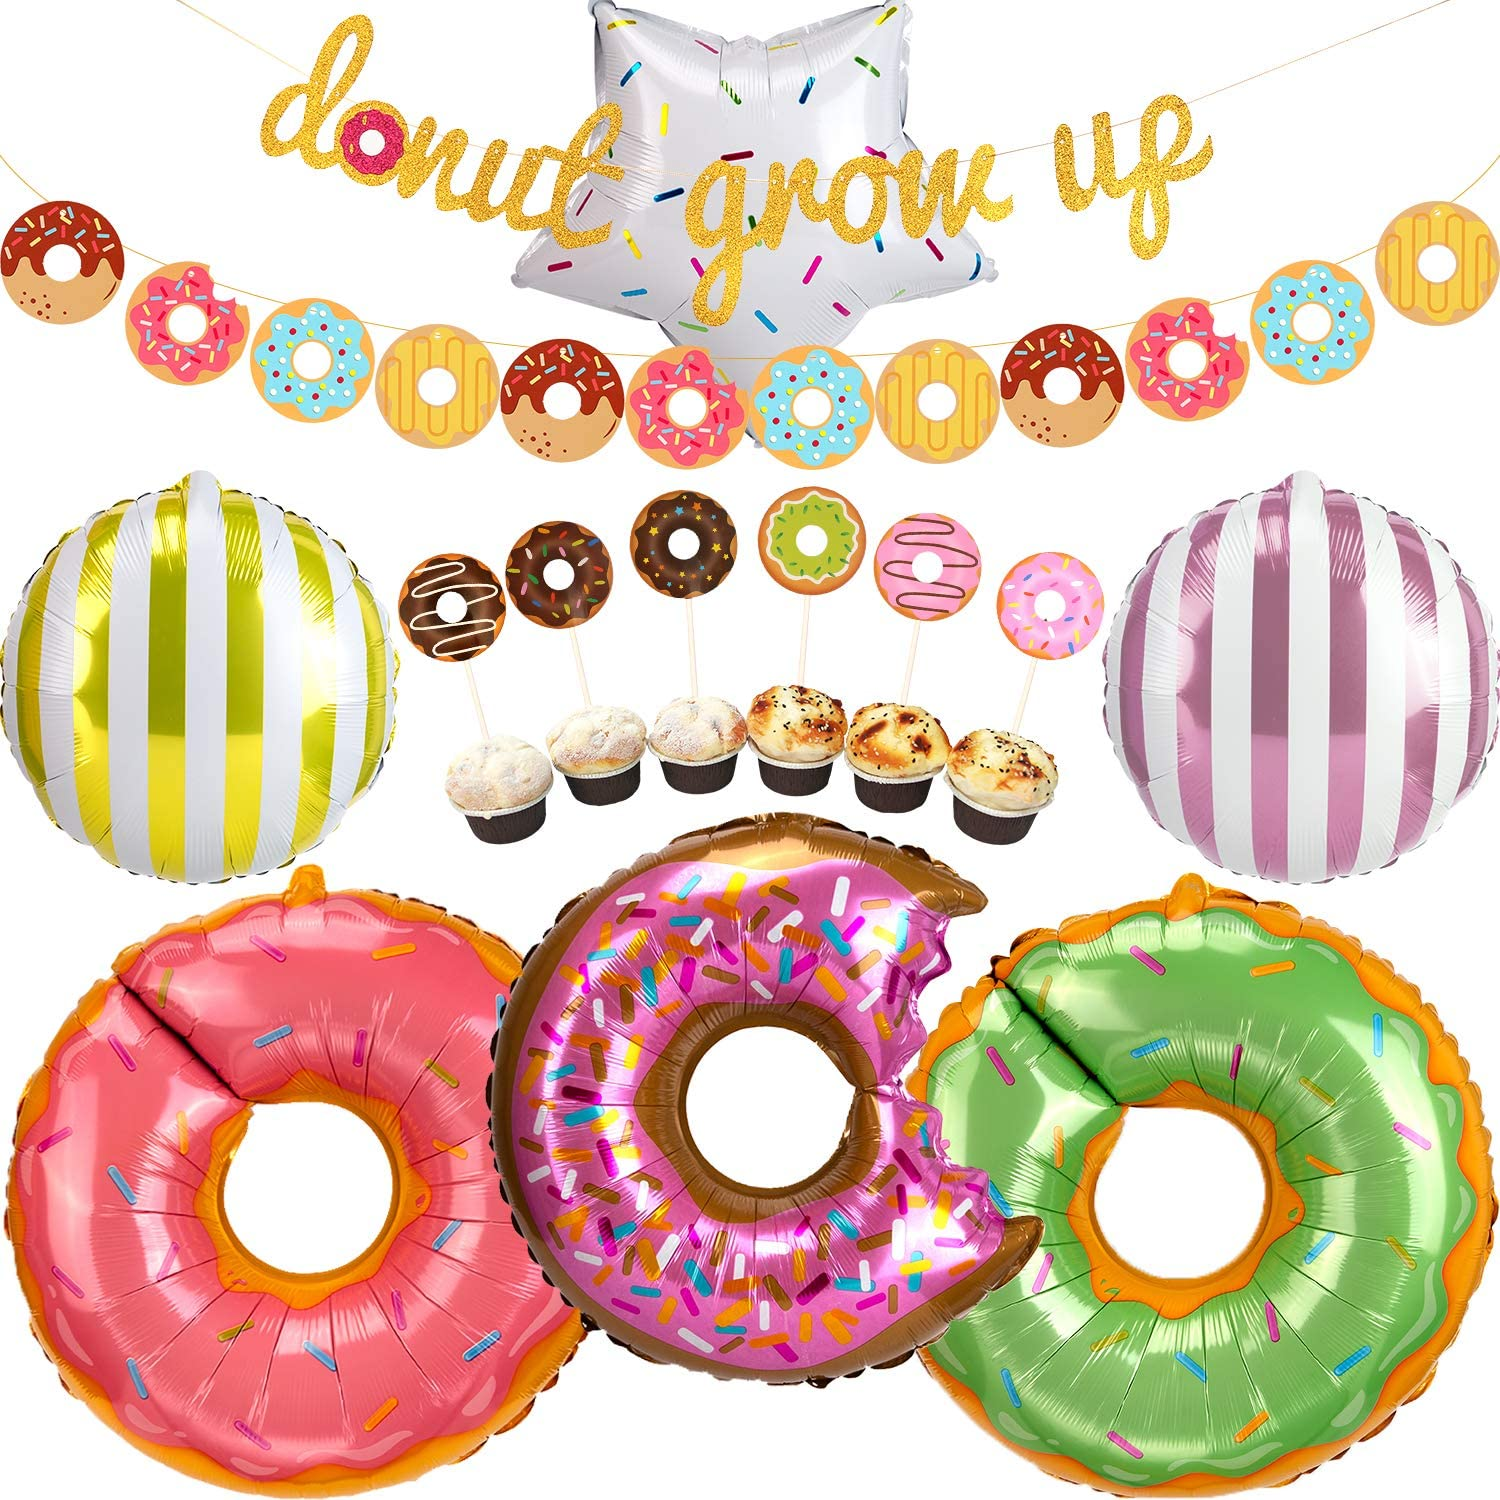 AIEX 14 Pcs Donut Party Supplies Kit, Glitter Donut Grow Up Banner Donut Foil Balloons Donut Cupcake Toppers for Donut Party Favors Baby Shower Birthday Party Decorations